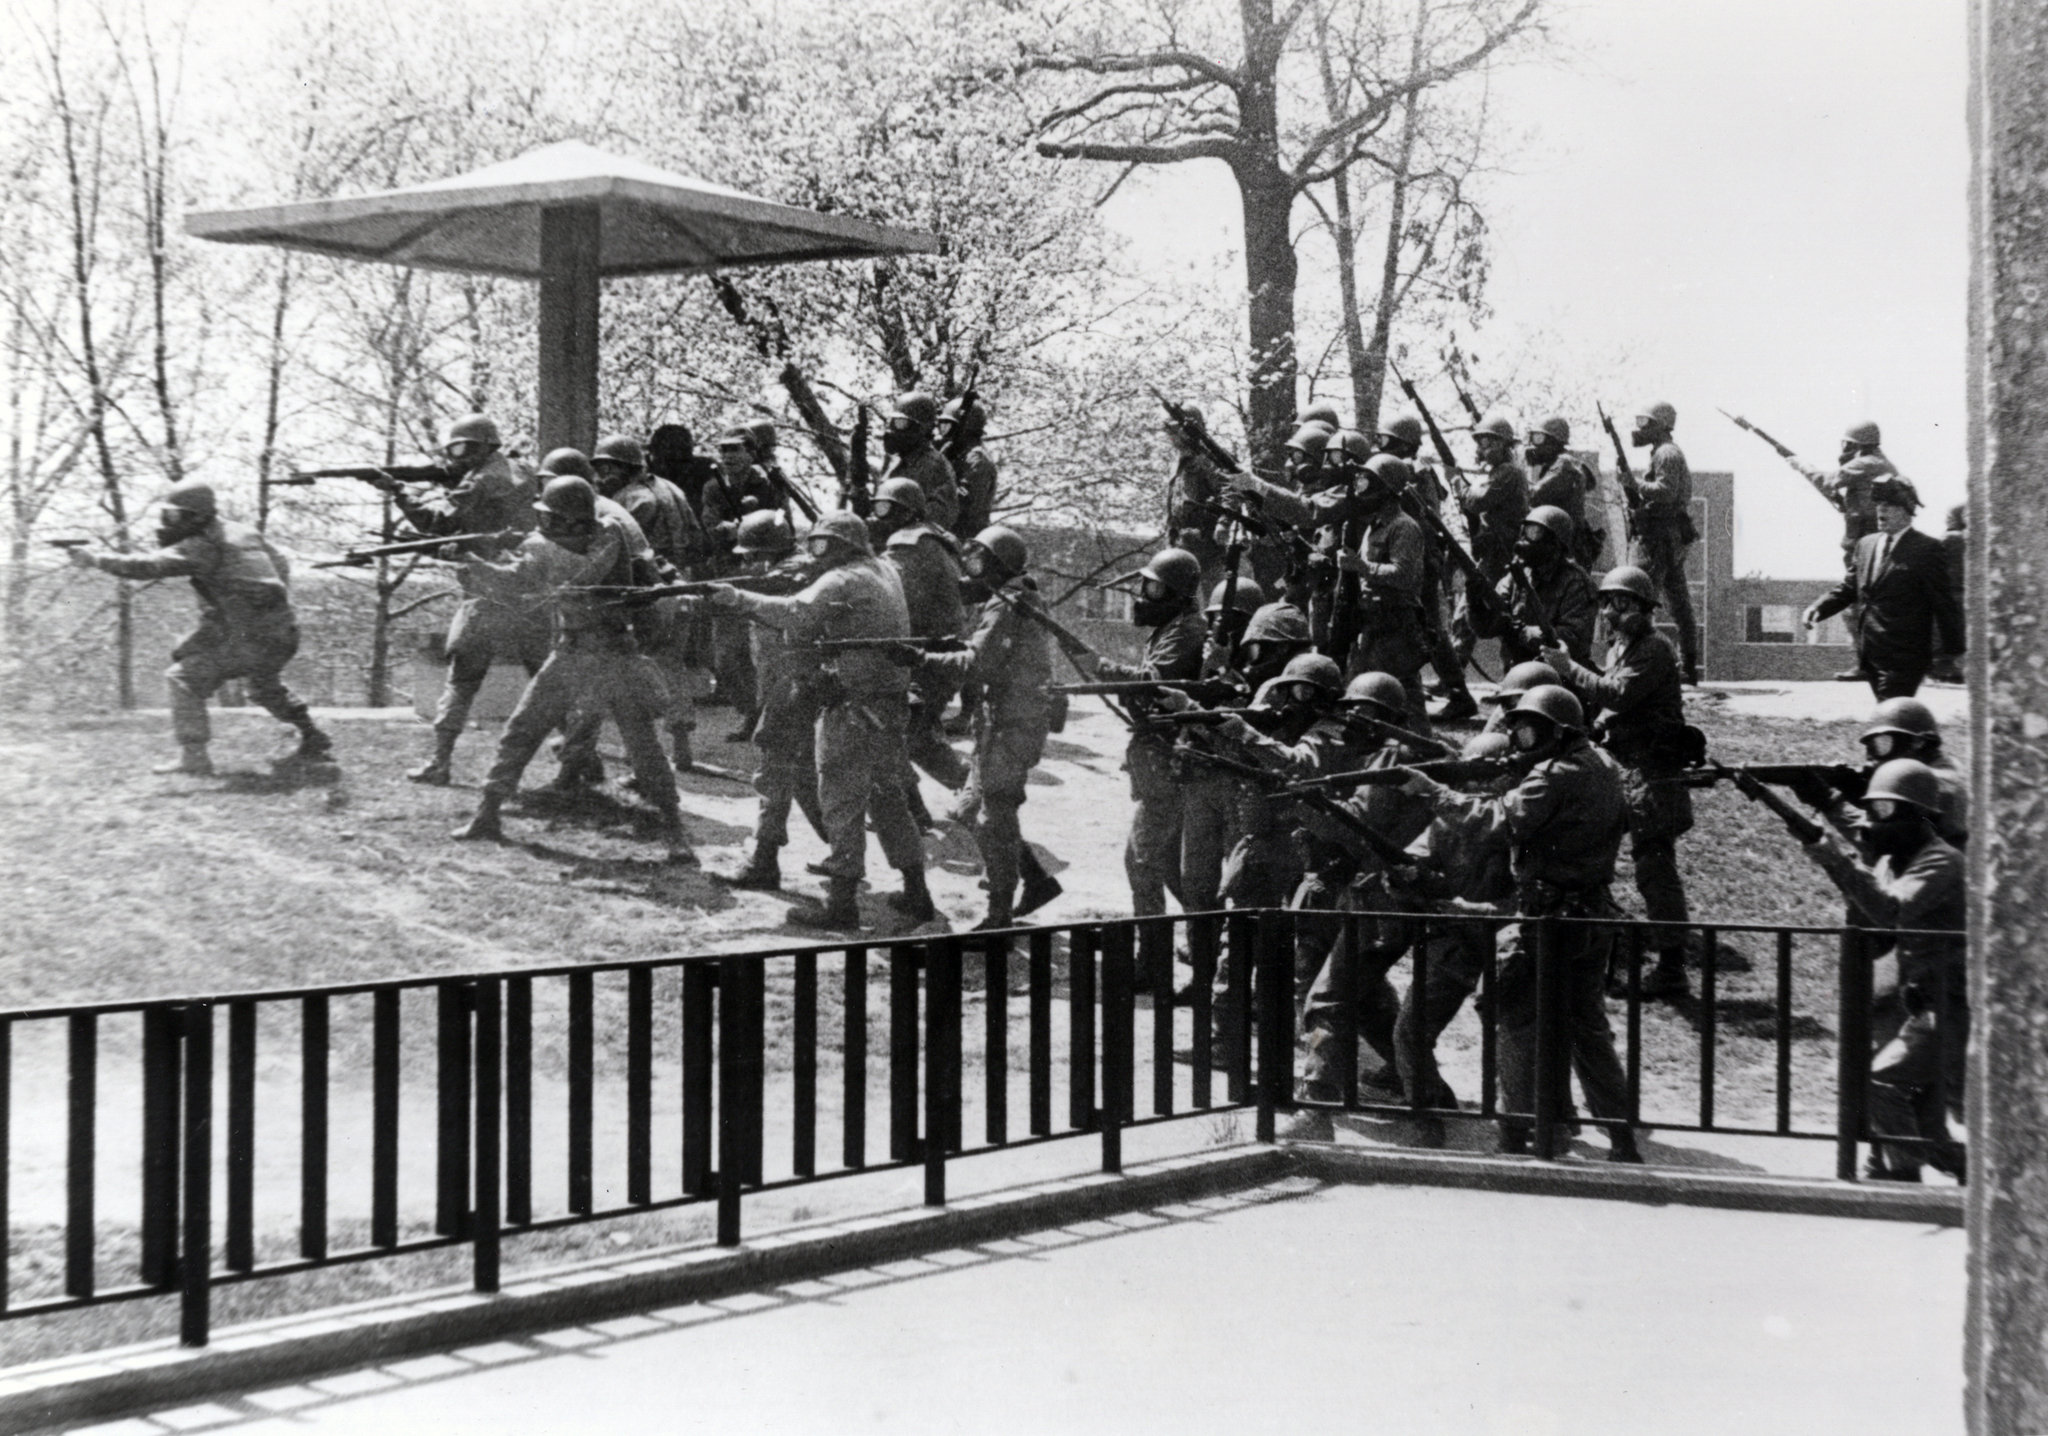 Kent State University students during an anti-war protest on May 4, 1970